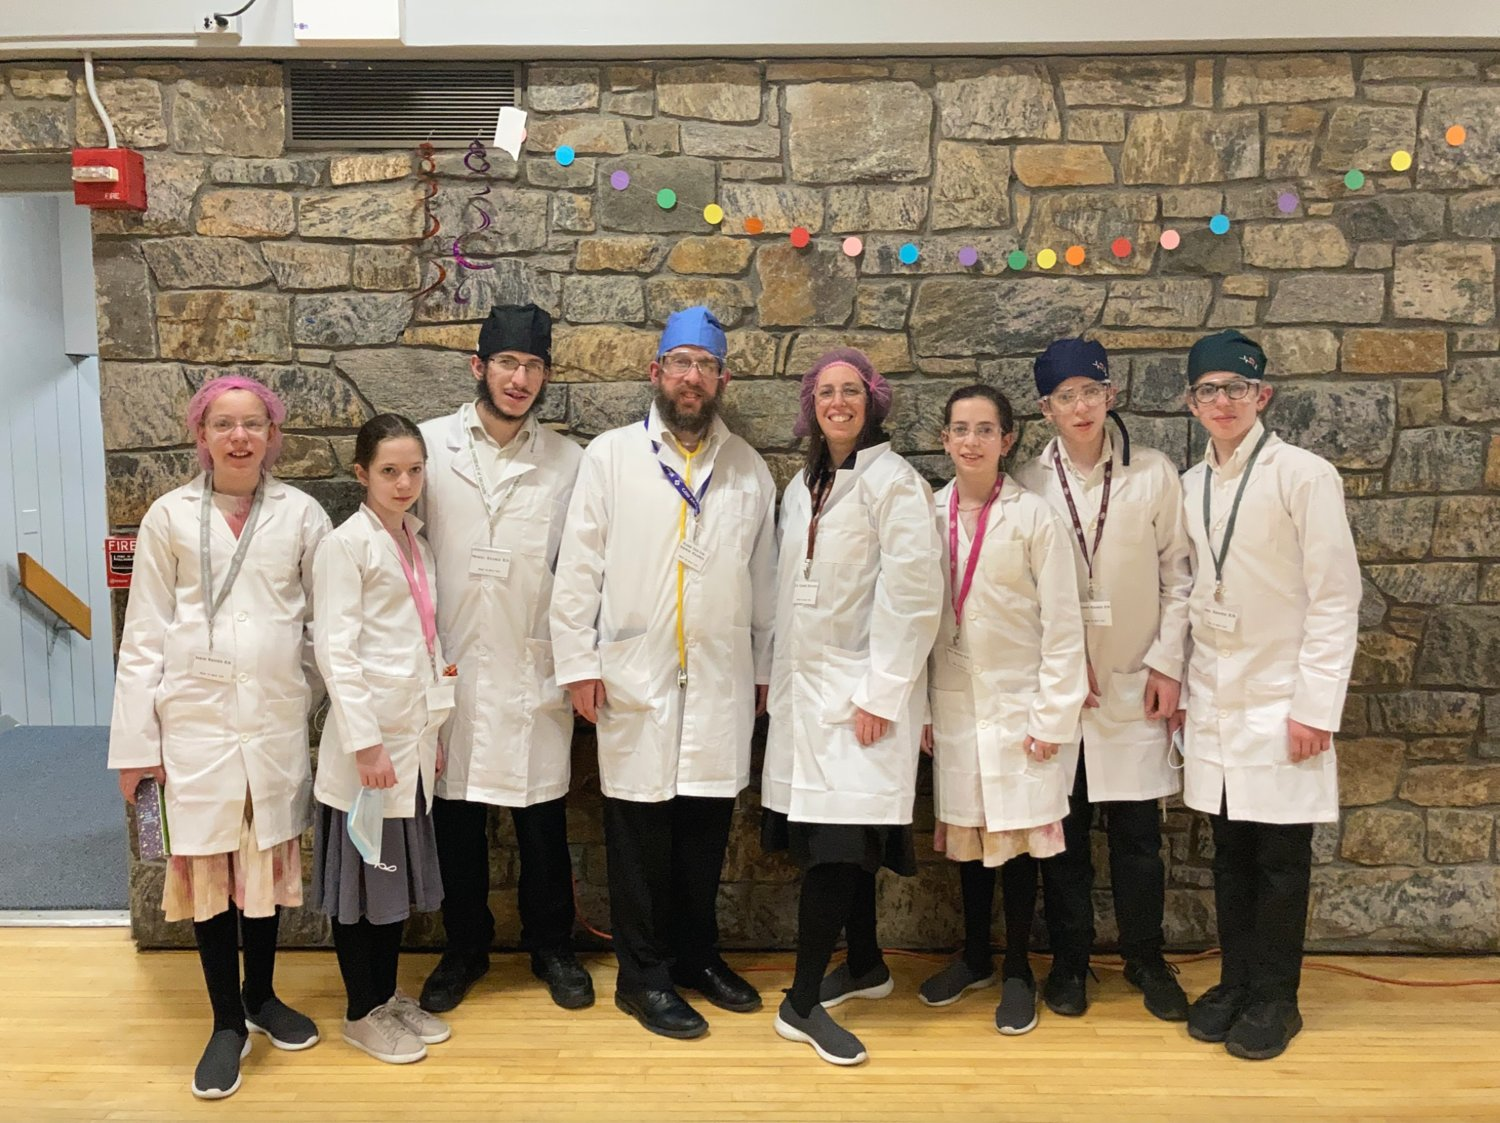 The Kramer family dressed up as essential workers to pay homage to those still serving on the frontlines of the coronavirus pandemic almost a year later.